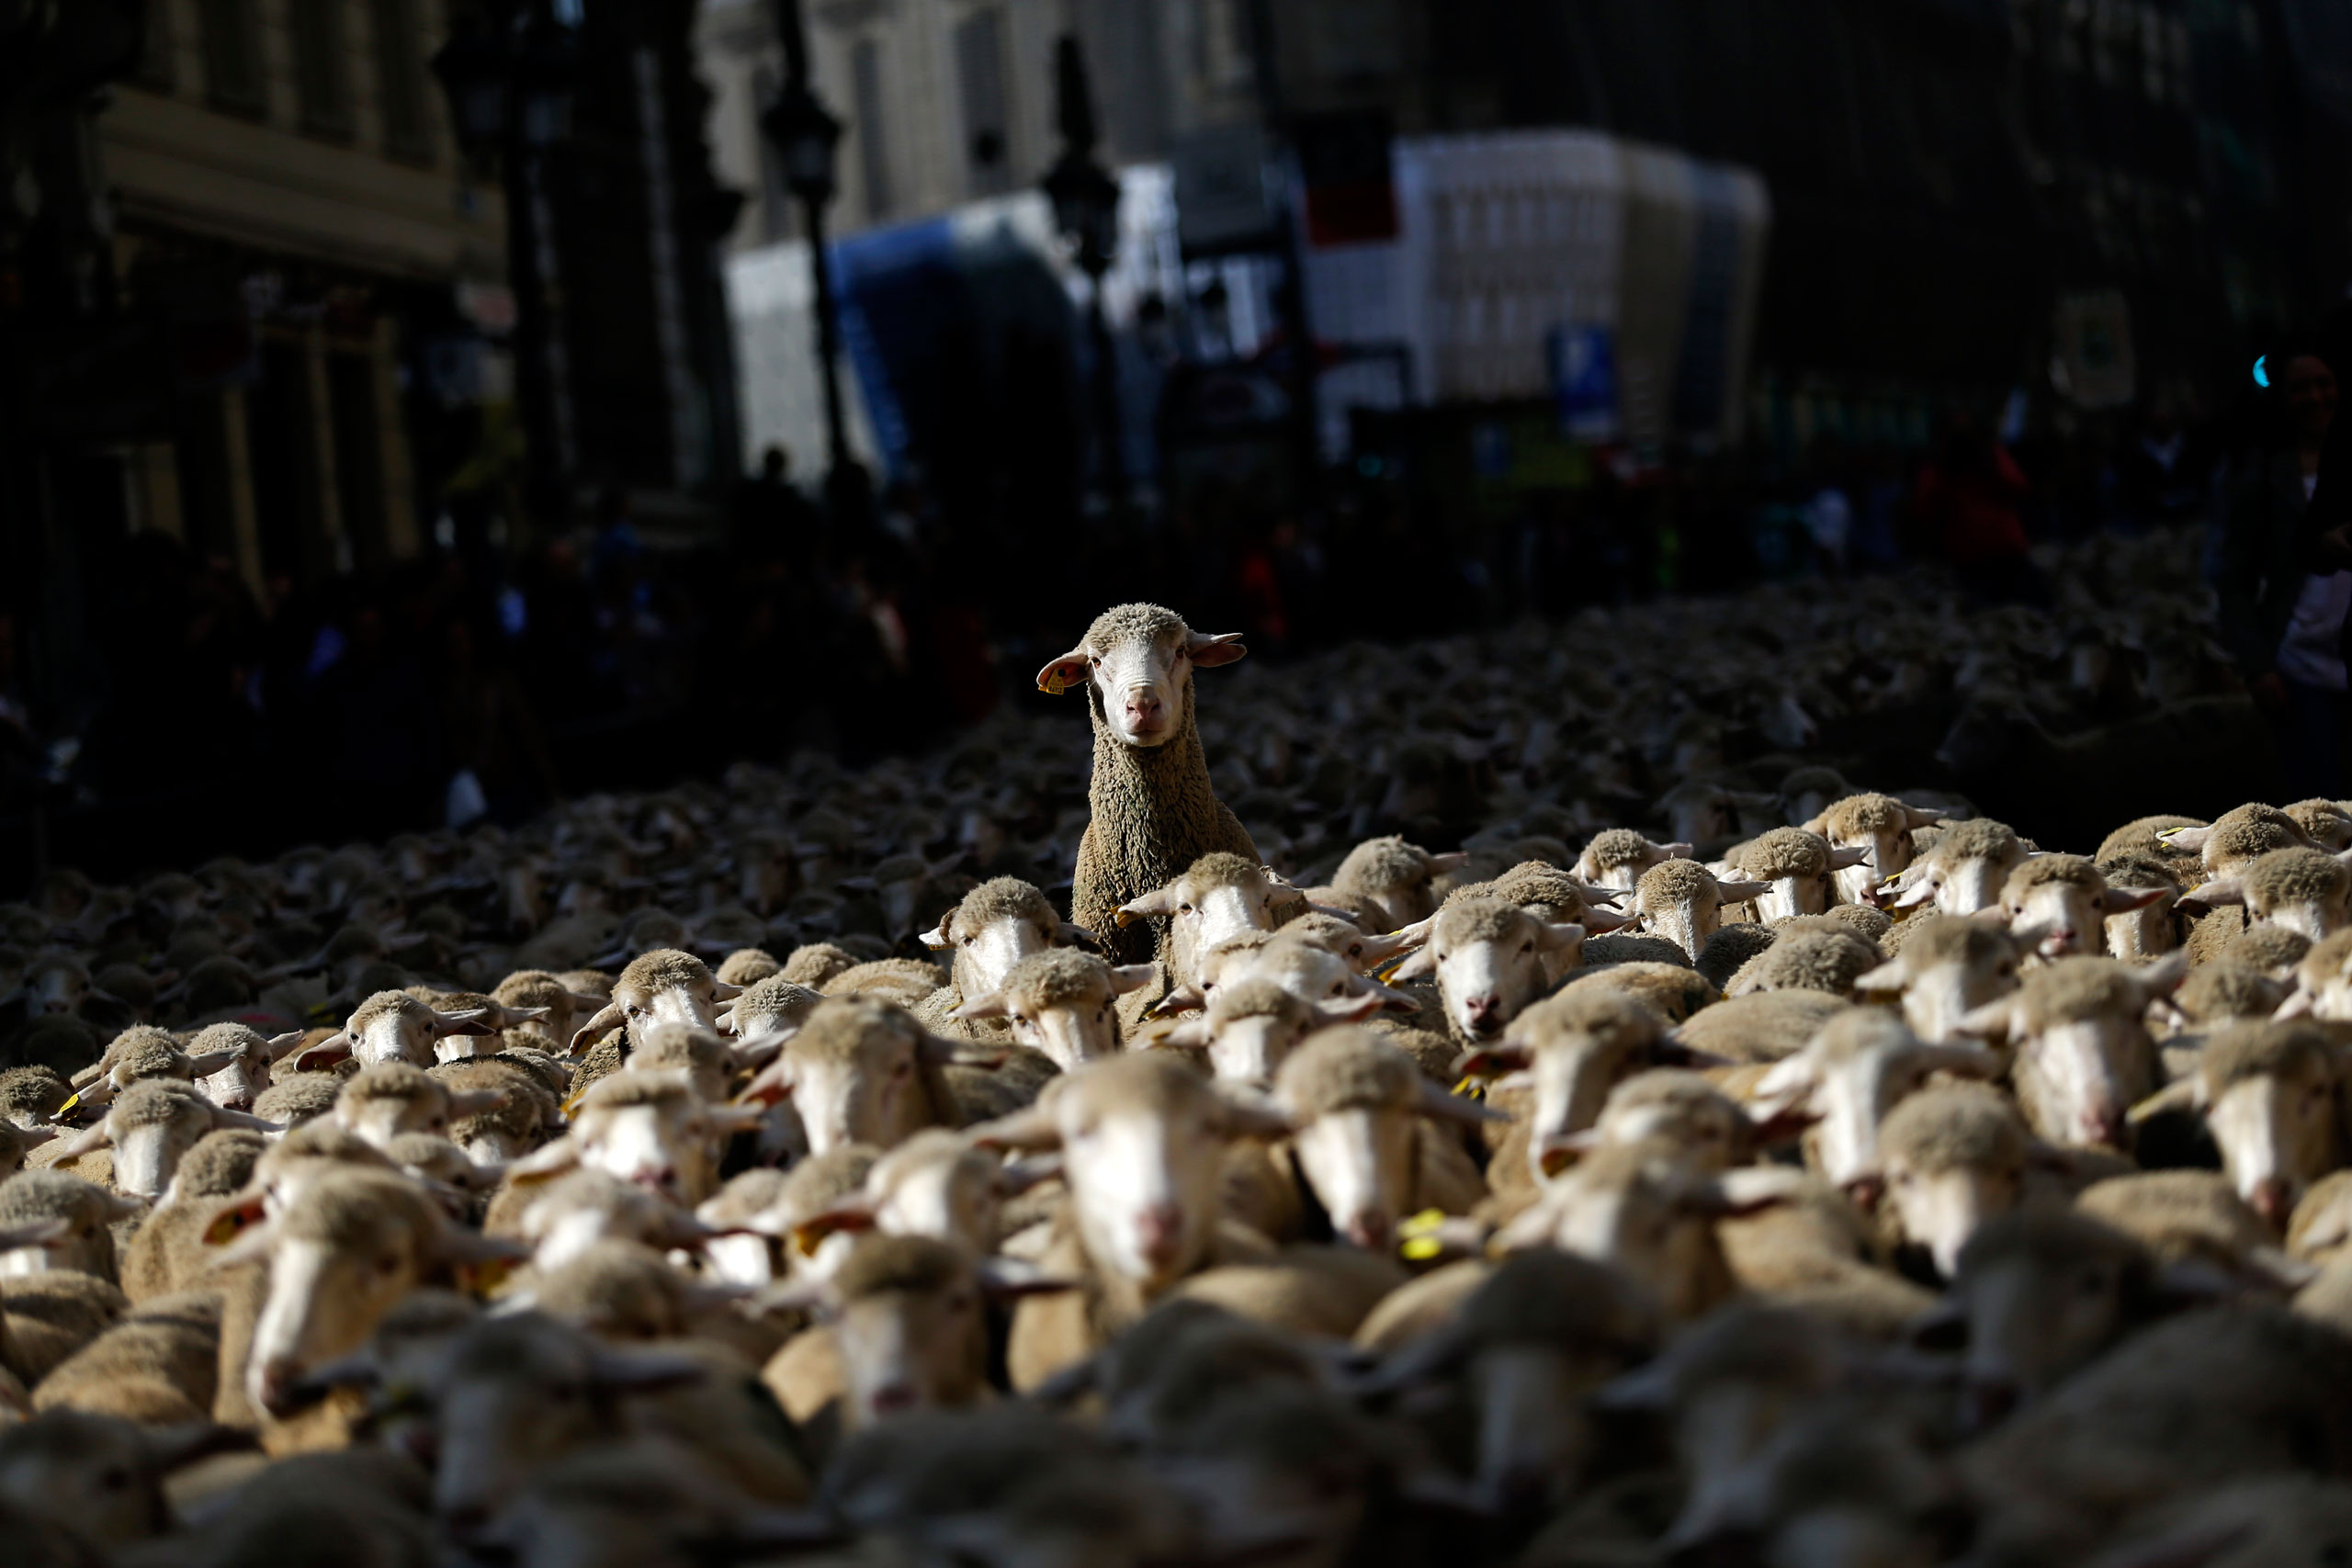 Sheep are led by shepherds through Madrid city center, Spain, Oct. 25, 2015.                                The flock of around 2,000 sheep is guided through Madrid streets in defense of ancient grazing, droving and migration rights increasingly threatened by urban sprawl and modern agricultural practices.